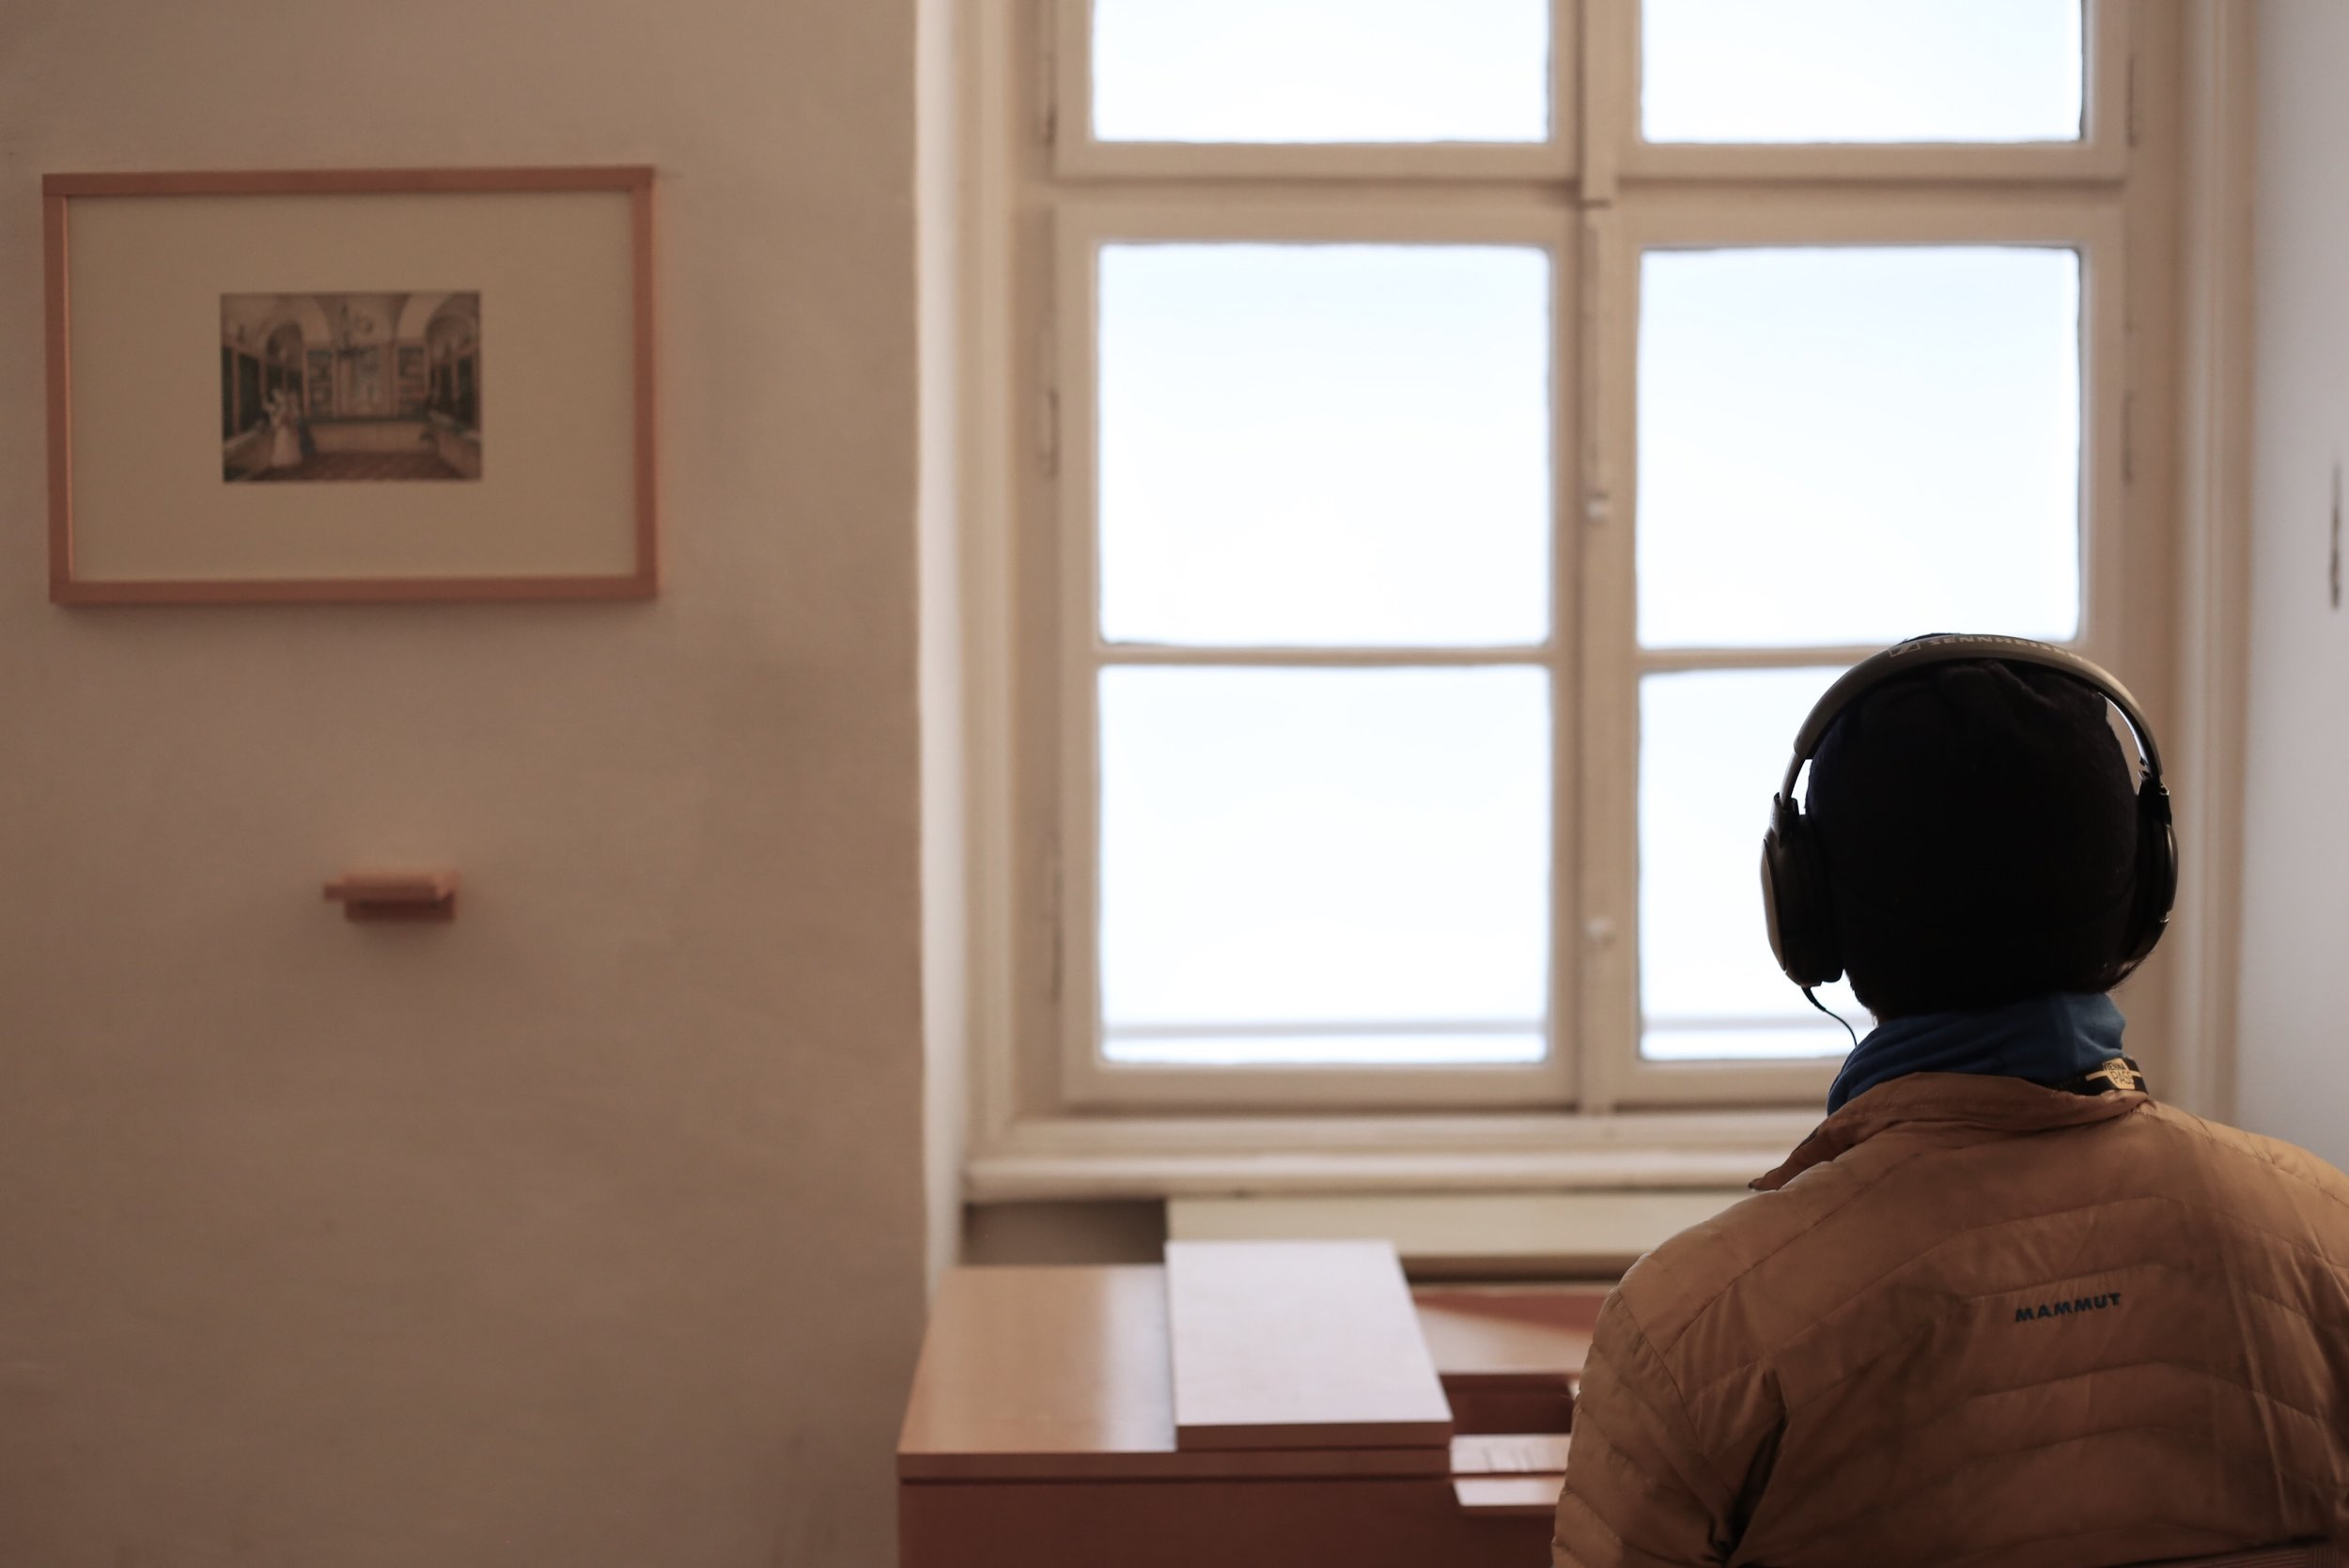 Ollie listening to music through headphones in Beethoven's house